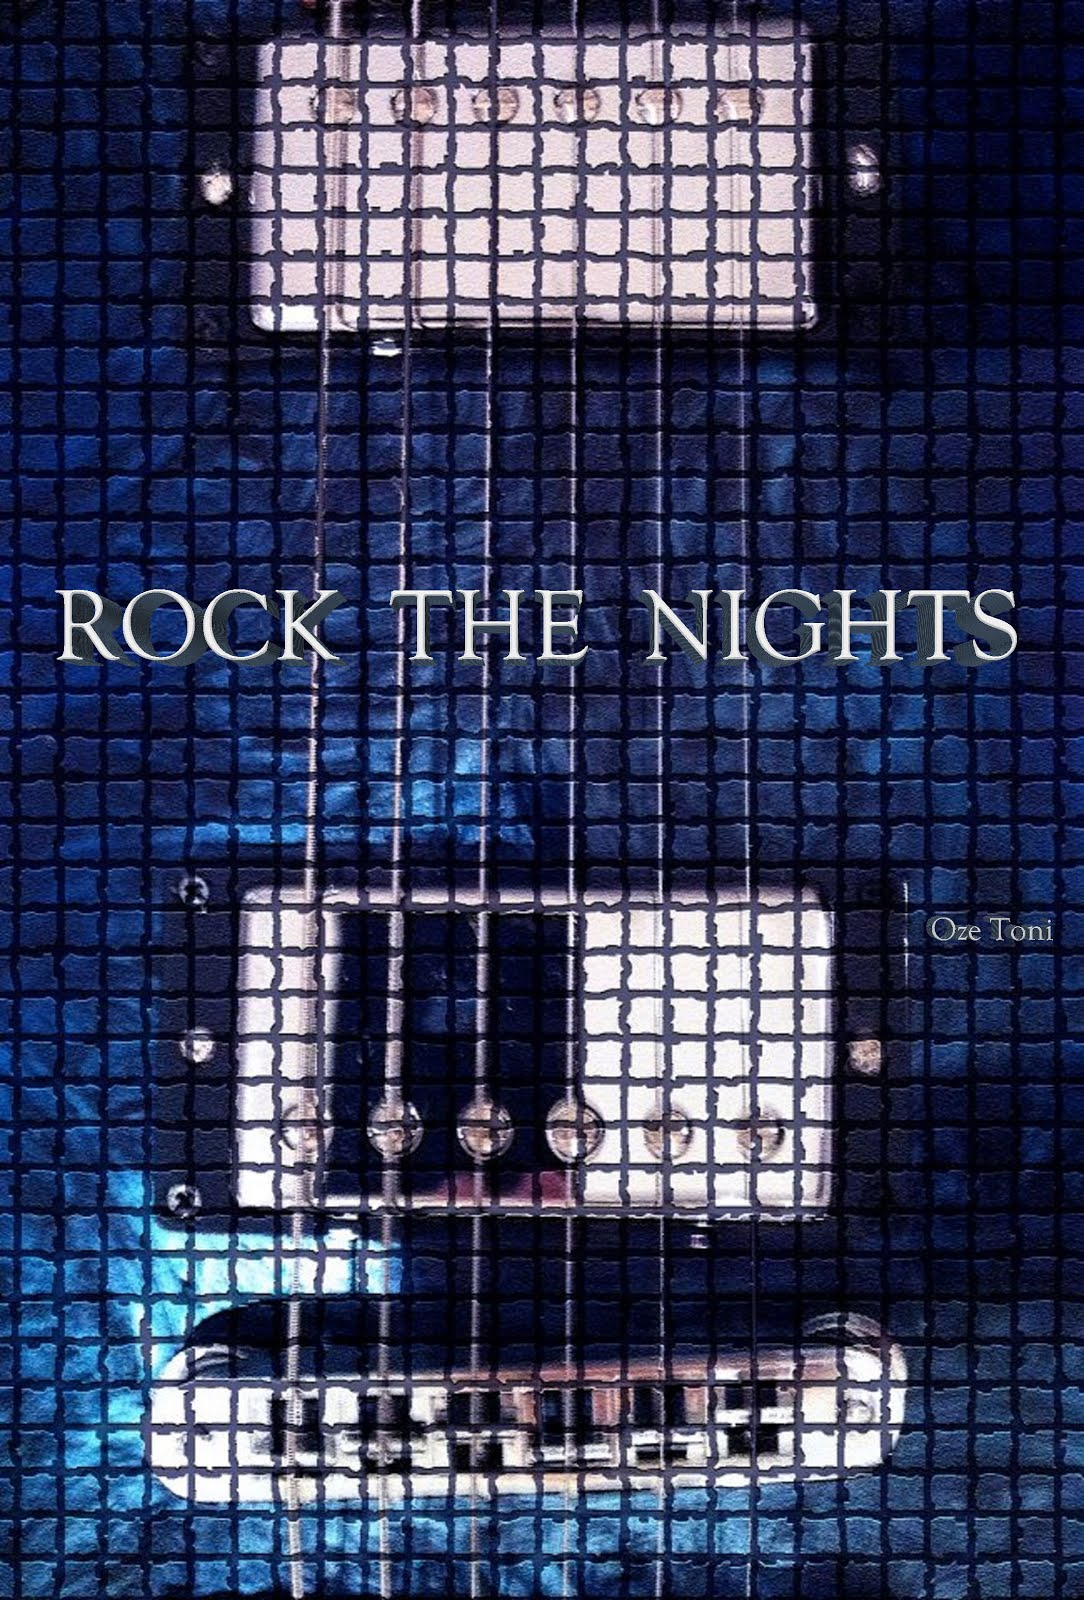 Click the image to visit Rock The Nights On Facebook